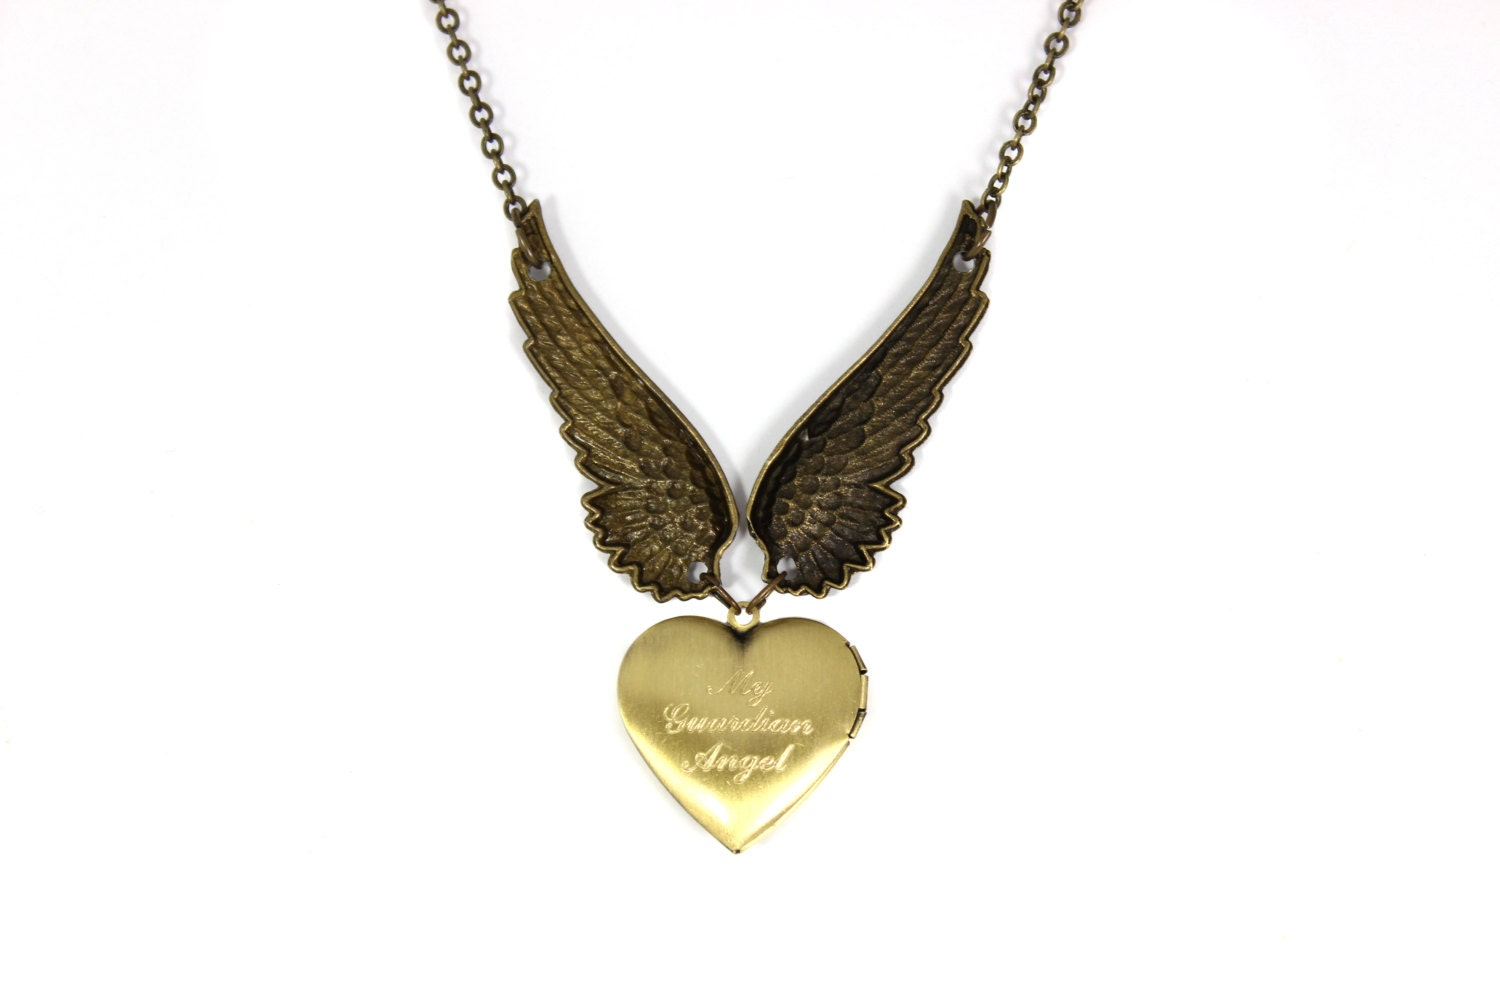 engraved necklace wing necklace locket necklace